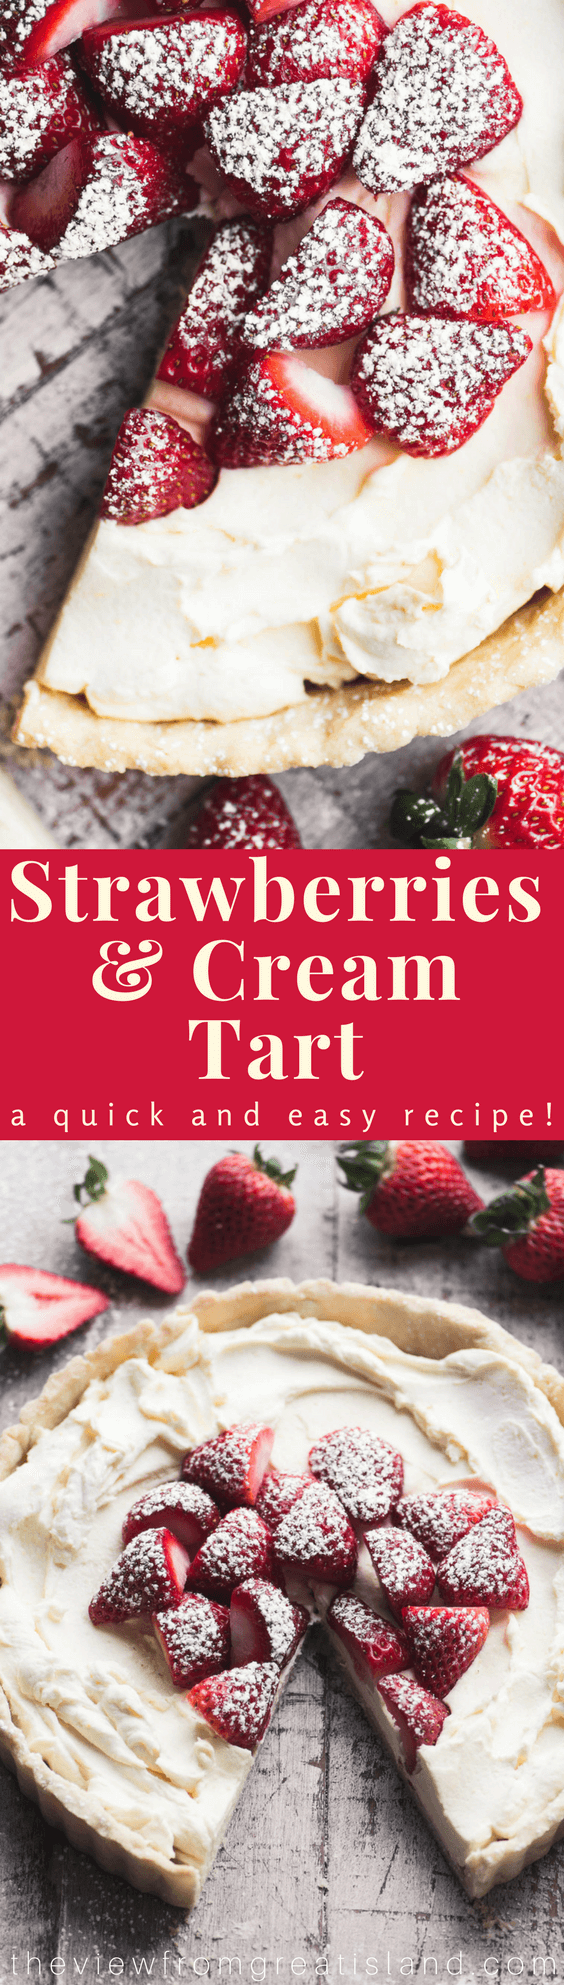 Strawberries and Cream Tart ~ a simple spring dessert with an easygoing elegance. (You won't believe how simple the filling is!!) #strawberries #tart #fruittart #creamtart #whippedcream #dessert #shortbreadcrust #easydessert #mothersday #easter #springdessert #strawberrydessert